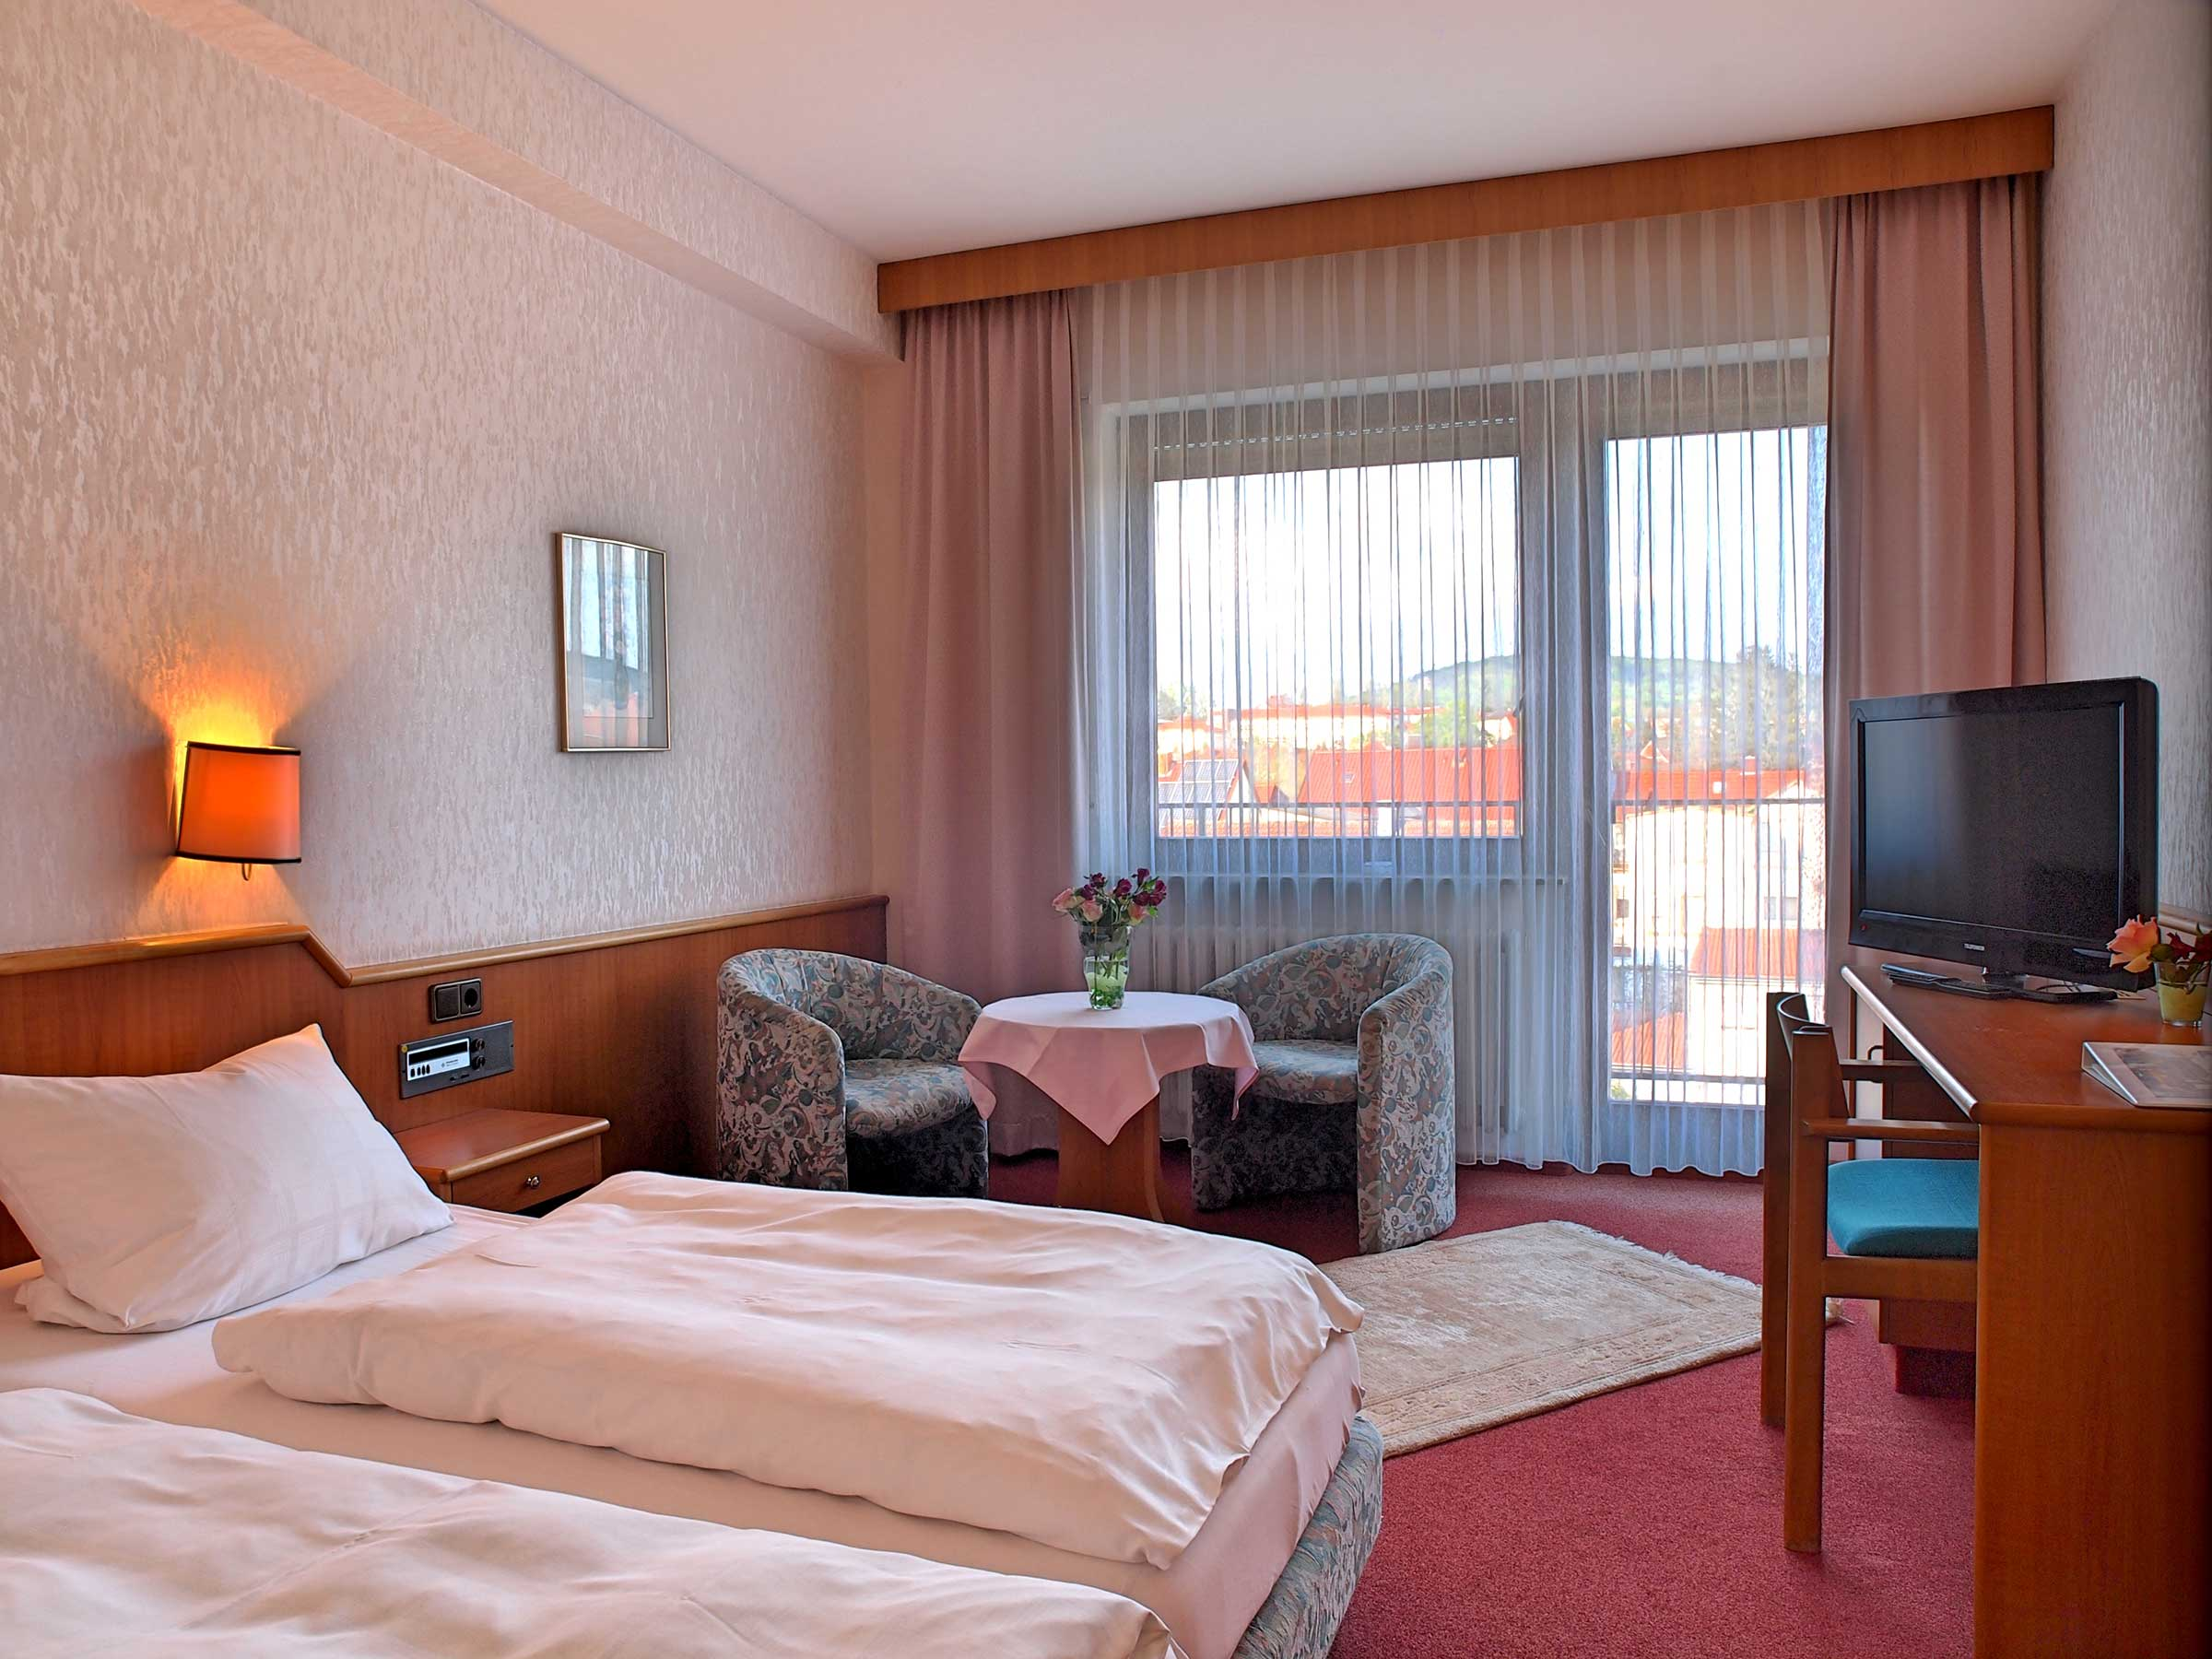 Doppelzimmer Hotel Doesch Bad Kissingen